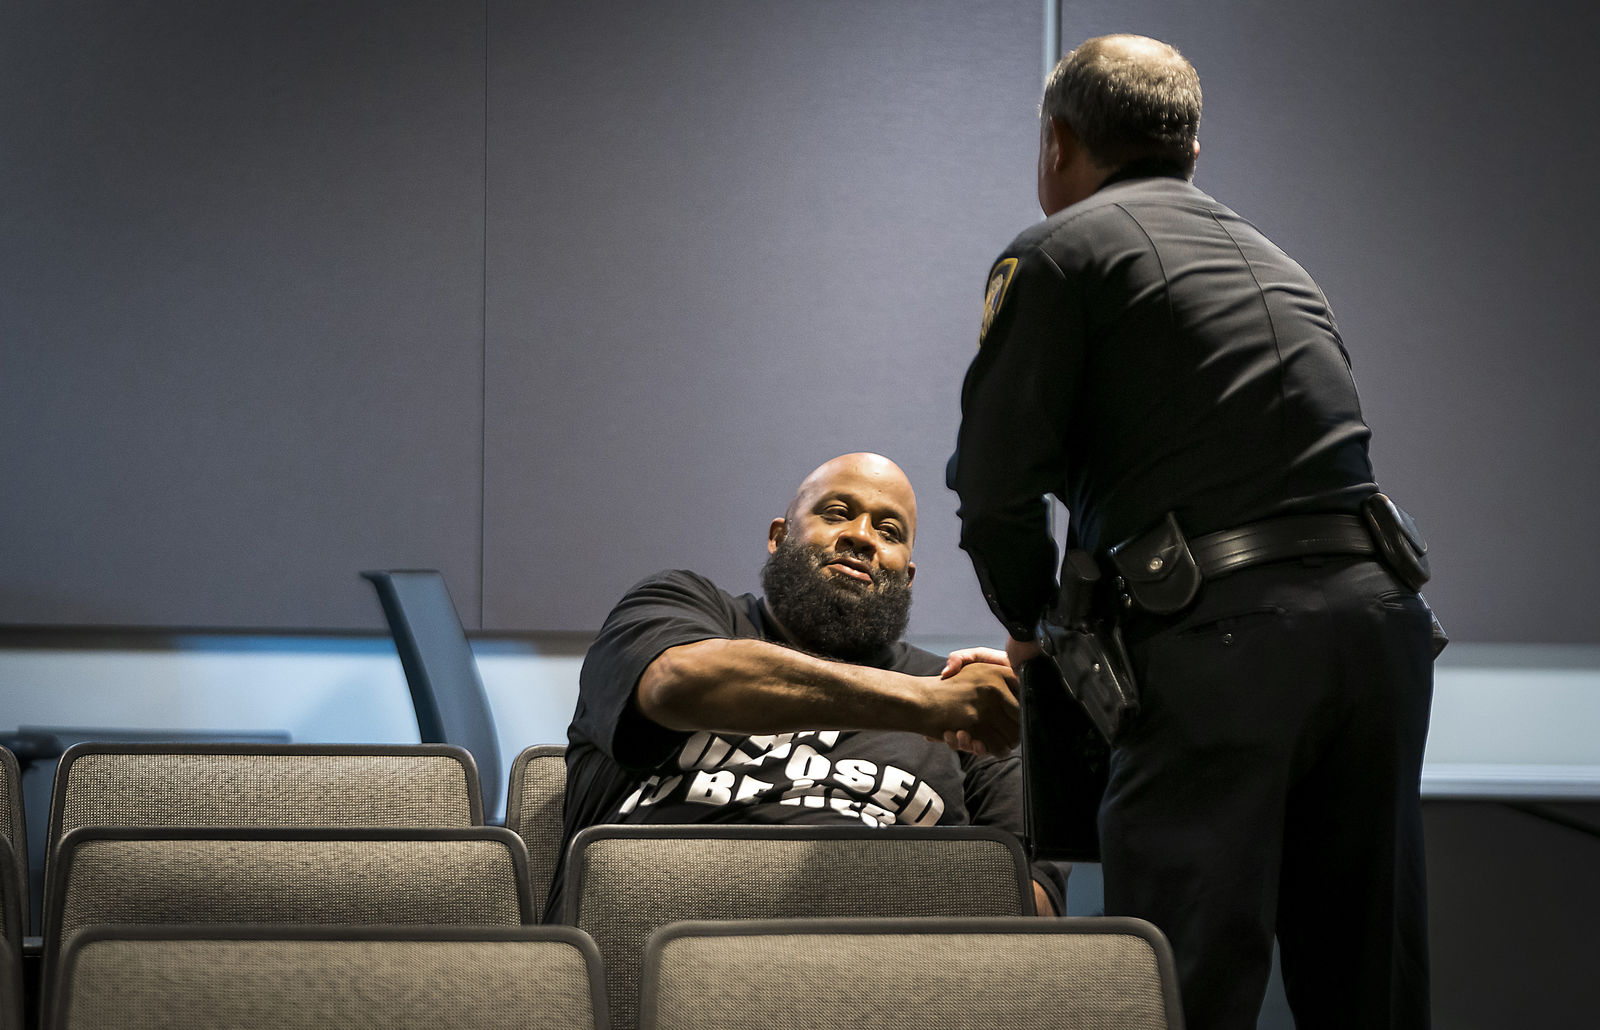 Fort Worth Police Lt. Brandon O'Neil shakes hands with Roger Foggle after addressing a news conference regarding the shooting of Atatiana Jefferson at the Bob Bolen Public Safety Complex on Sunday, Oct. 13, 2019, in Fort Worth, Texas. (Smiley N. Pool/The Dallas Morning News via AP)